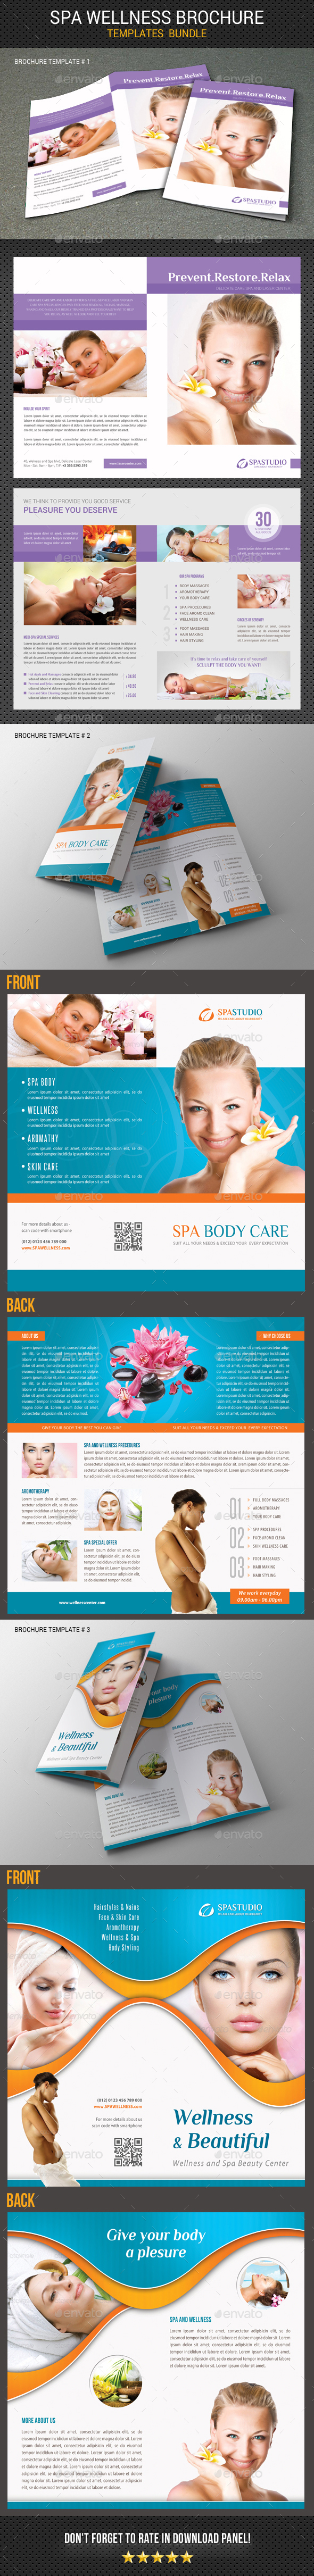 Spa Wellness Brochure Bundle 02 - Corporate Brochures